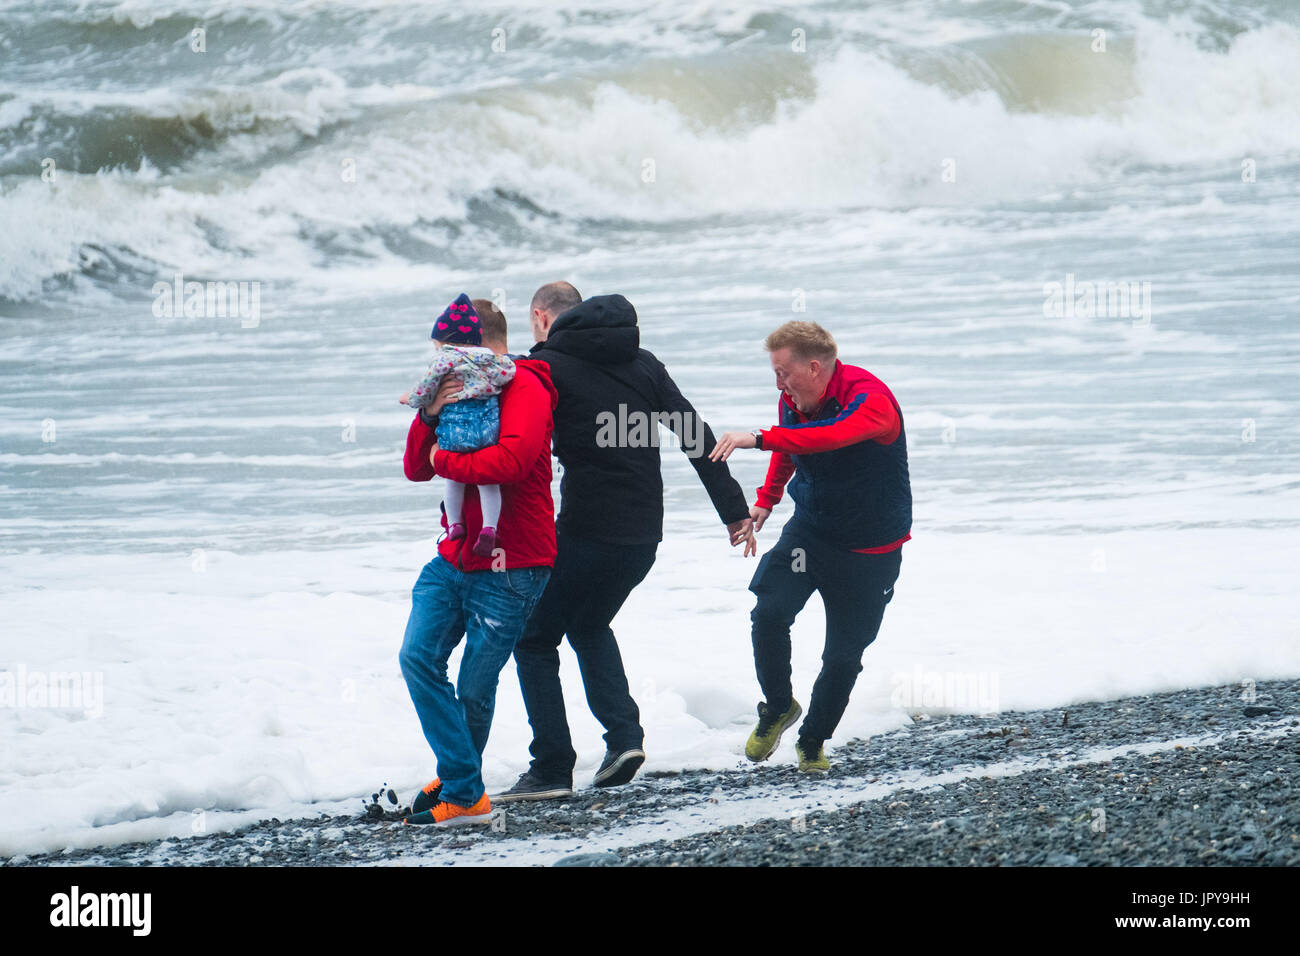 Aberystwyth Wales UK, Thursday 03 August 2017 UK Weather: A young family play a dangerous game of dodging the waves as unseasonal gale force winds and stormy seas lash the seaside at Aberystwyth on the west Wales coast. More wet and unsettled weather, caused by the jet stream flowing further south than normal, is forecast for the United Kingdom for much of the rest of the summer photo Credit: Keith Morris/Alamy Live News - Stock Image